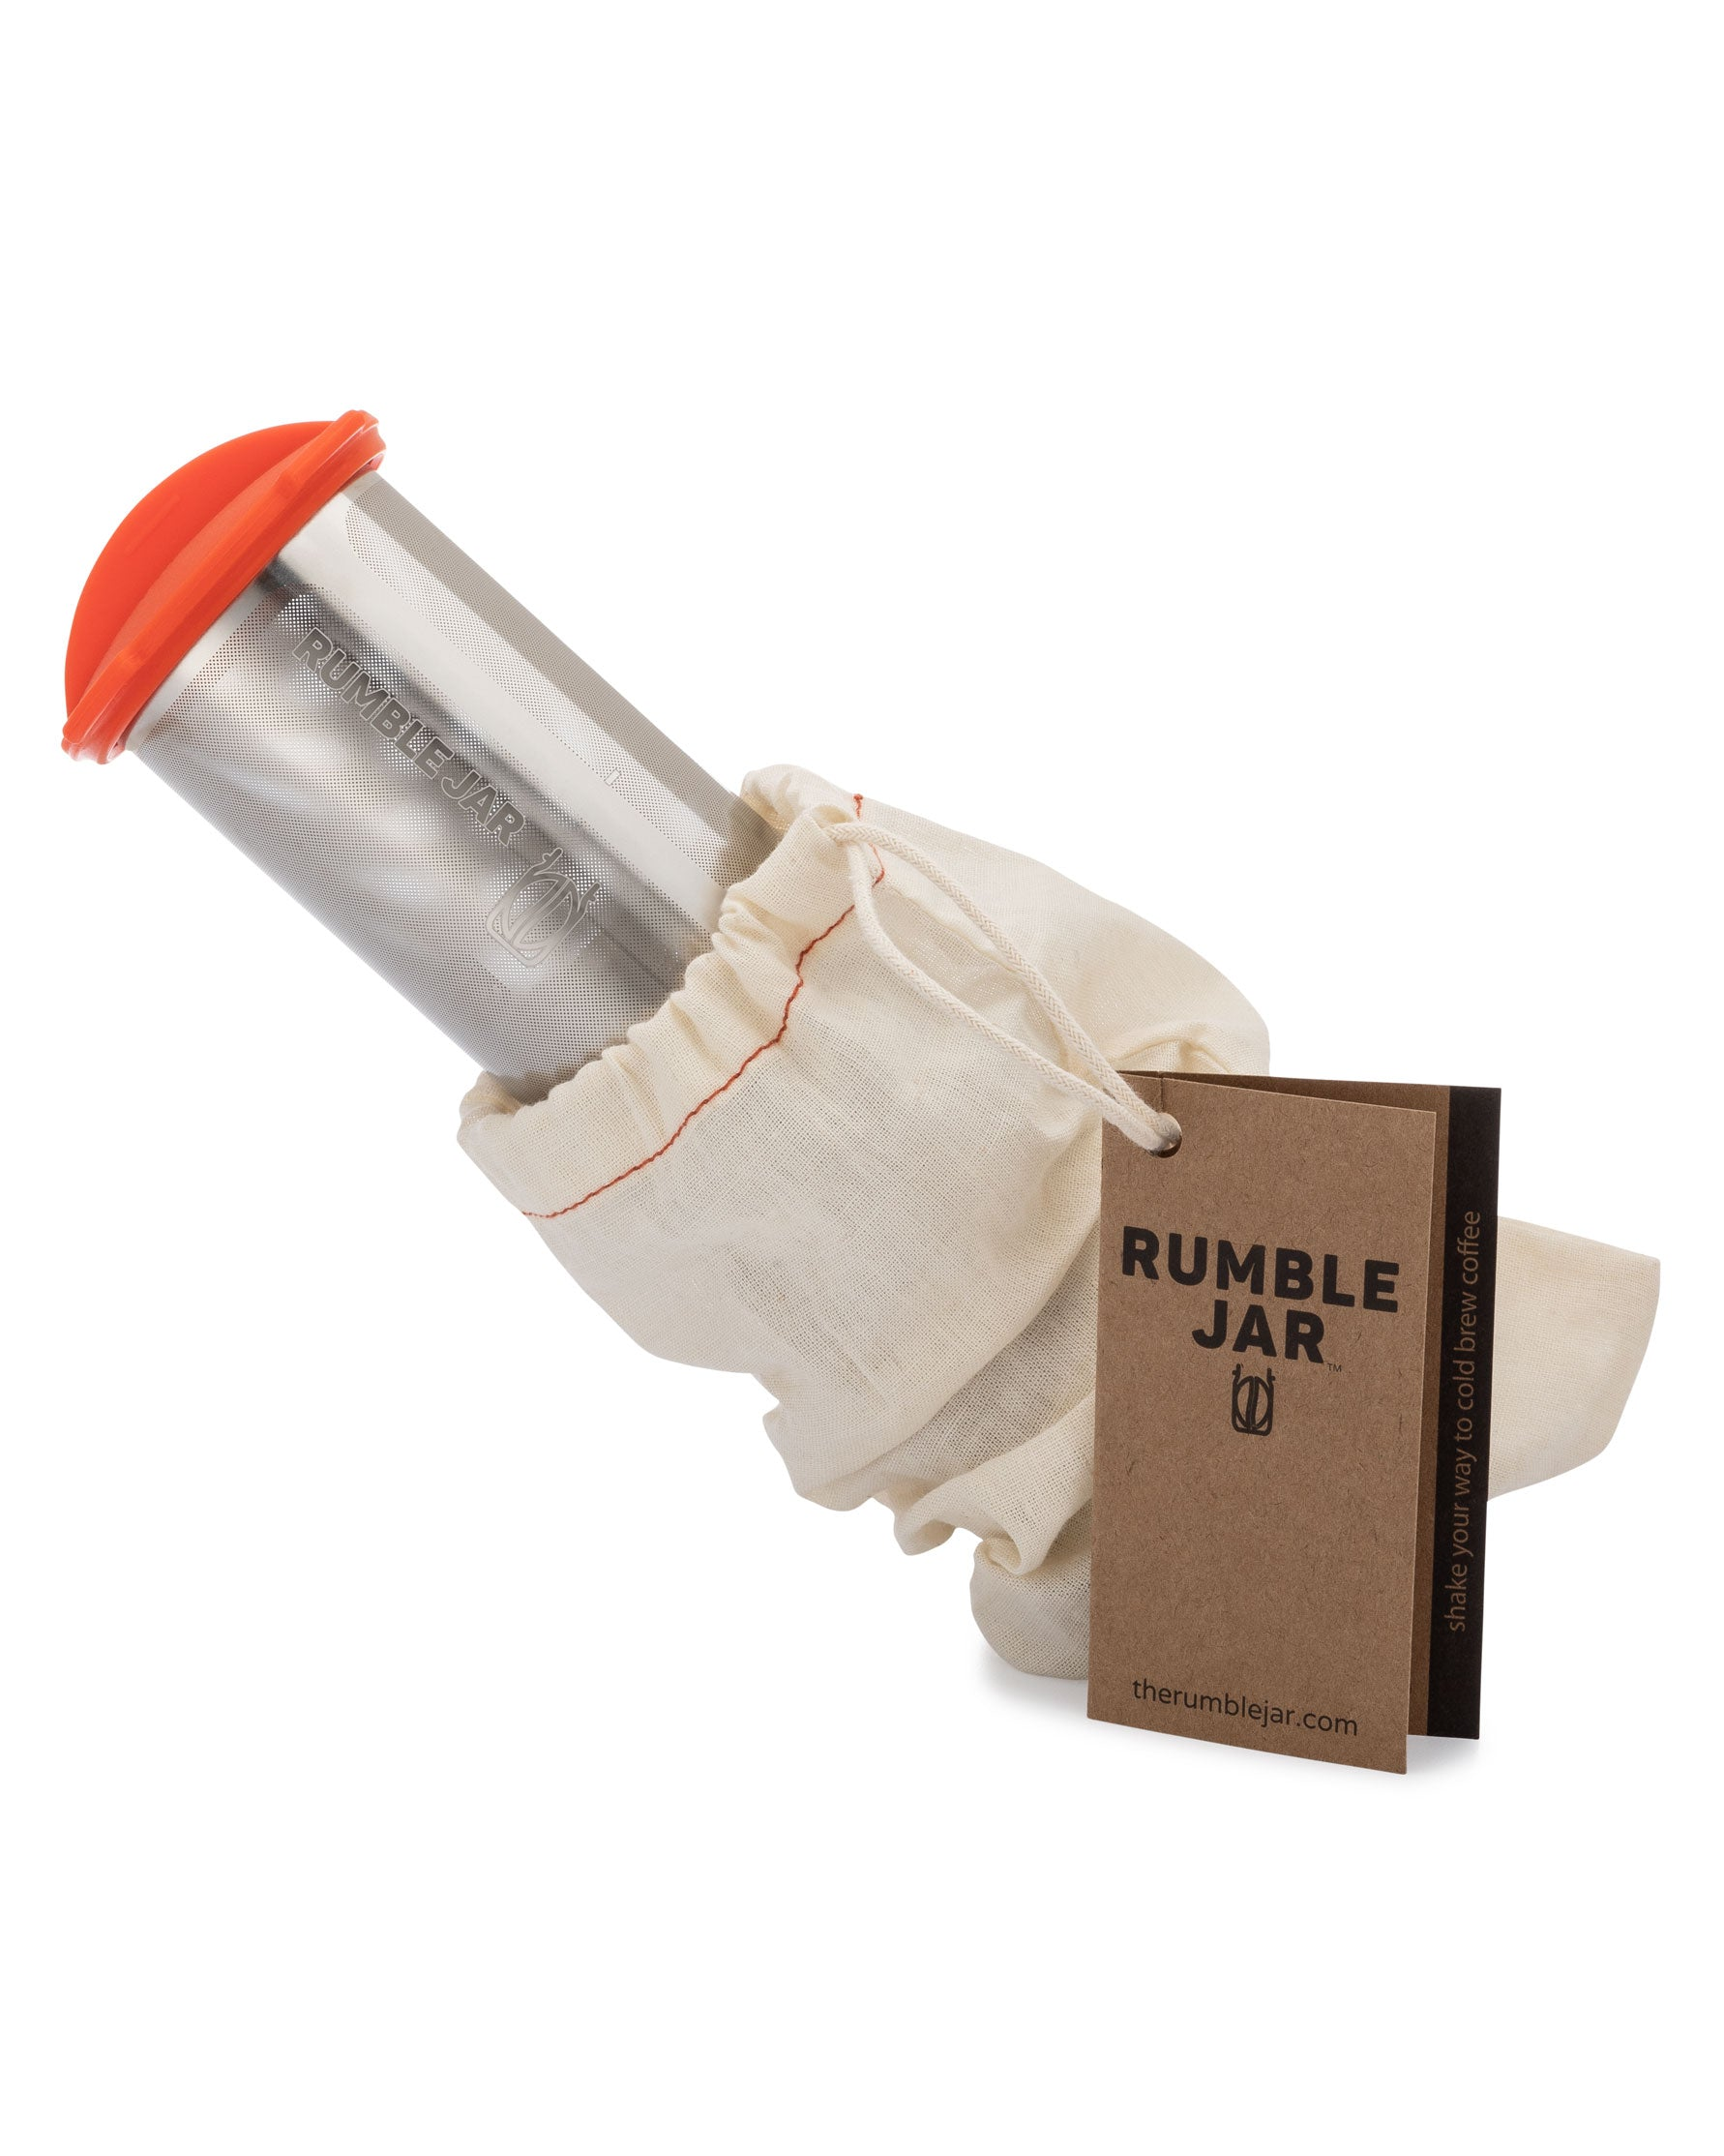 Rumble Jar half gallon 64 ounce cold brew coffee filter with orangey-red cap cotton filter sock and hangtag